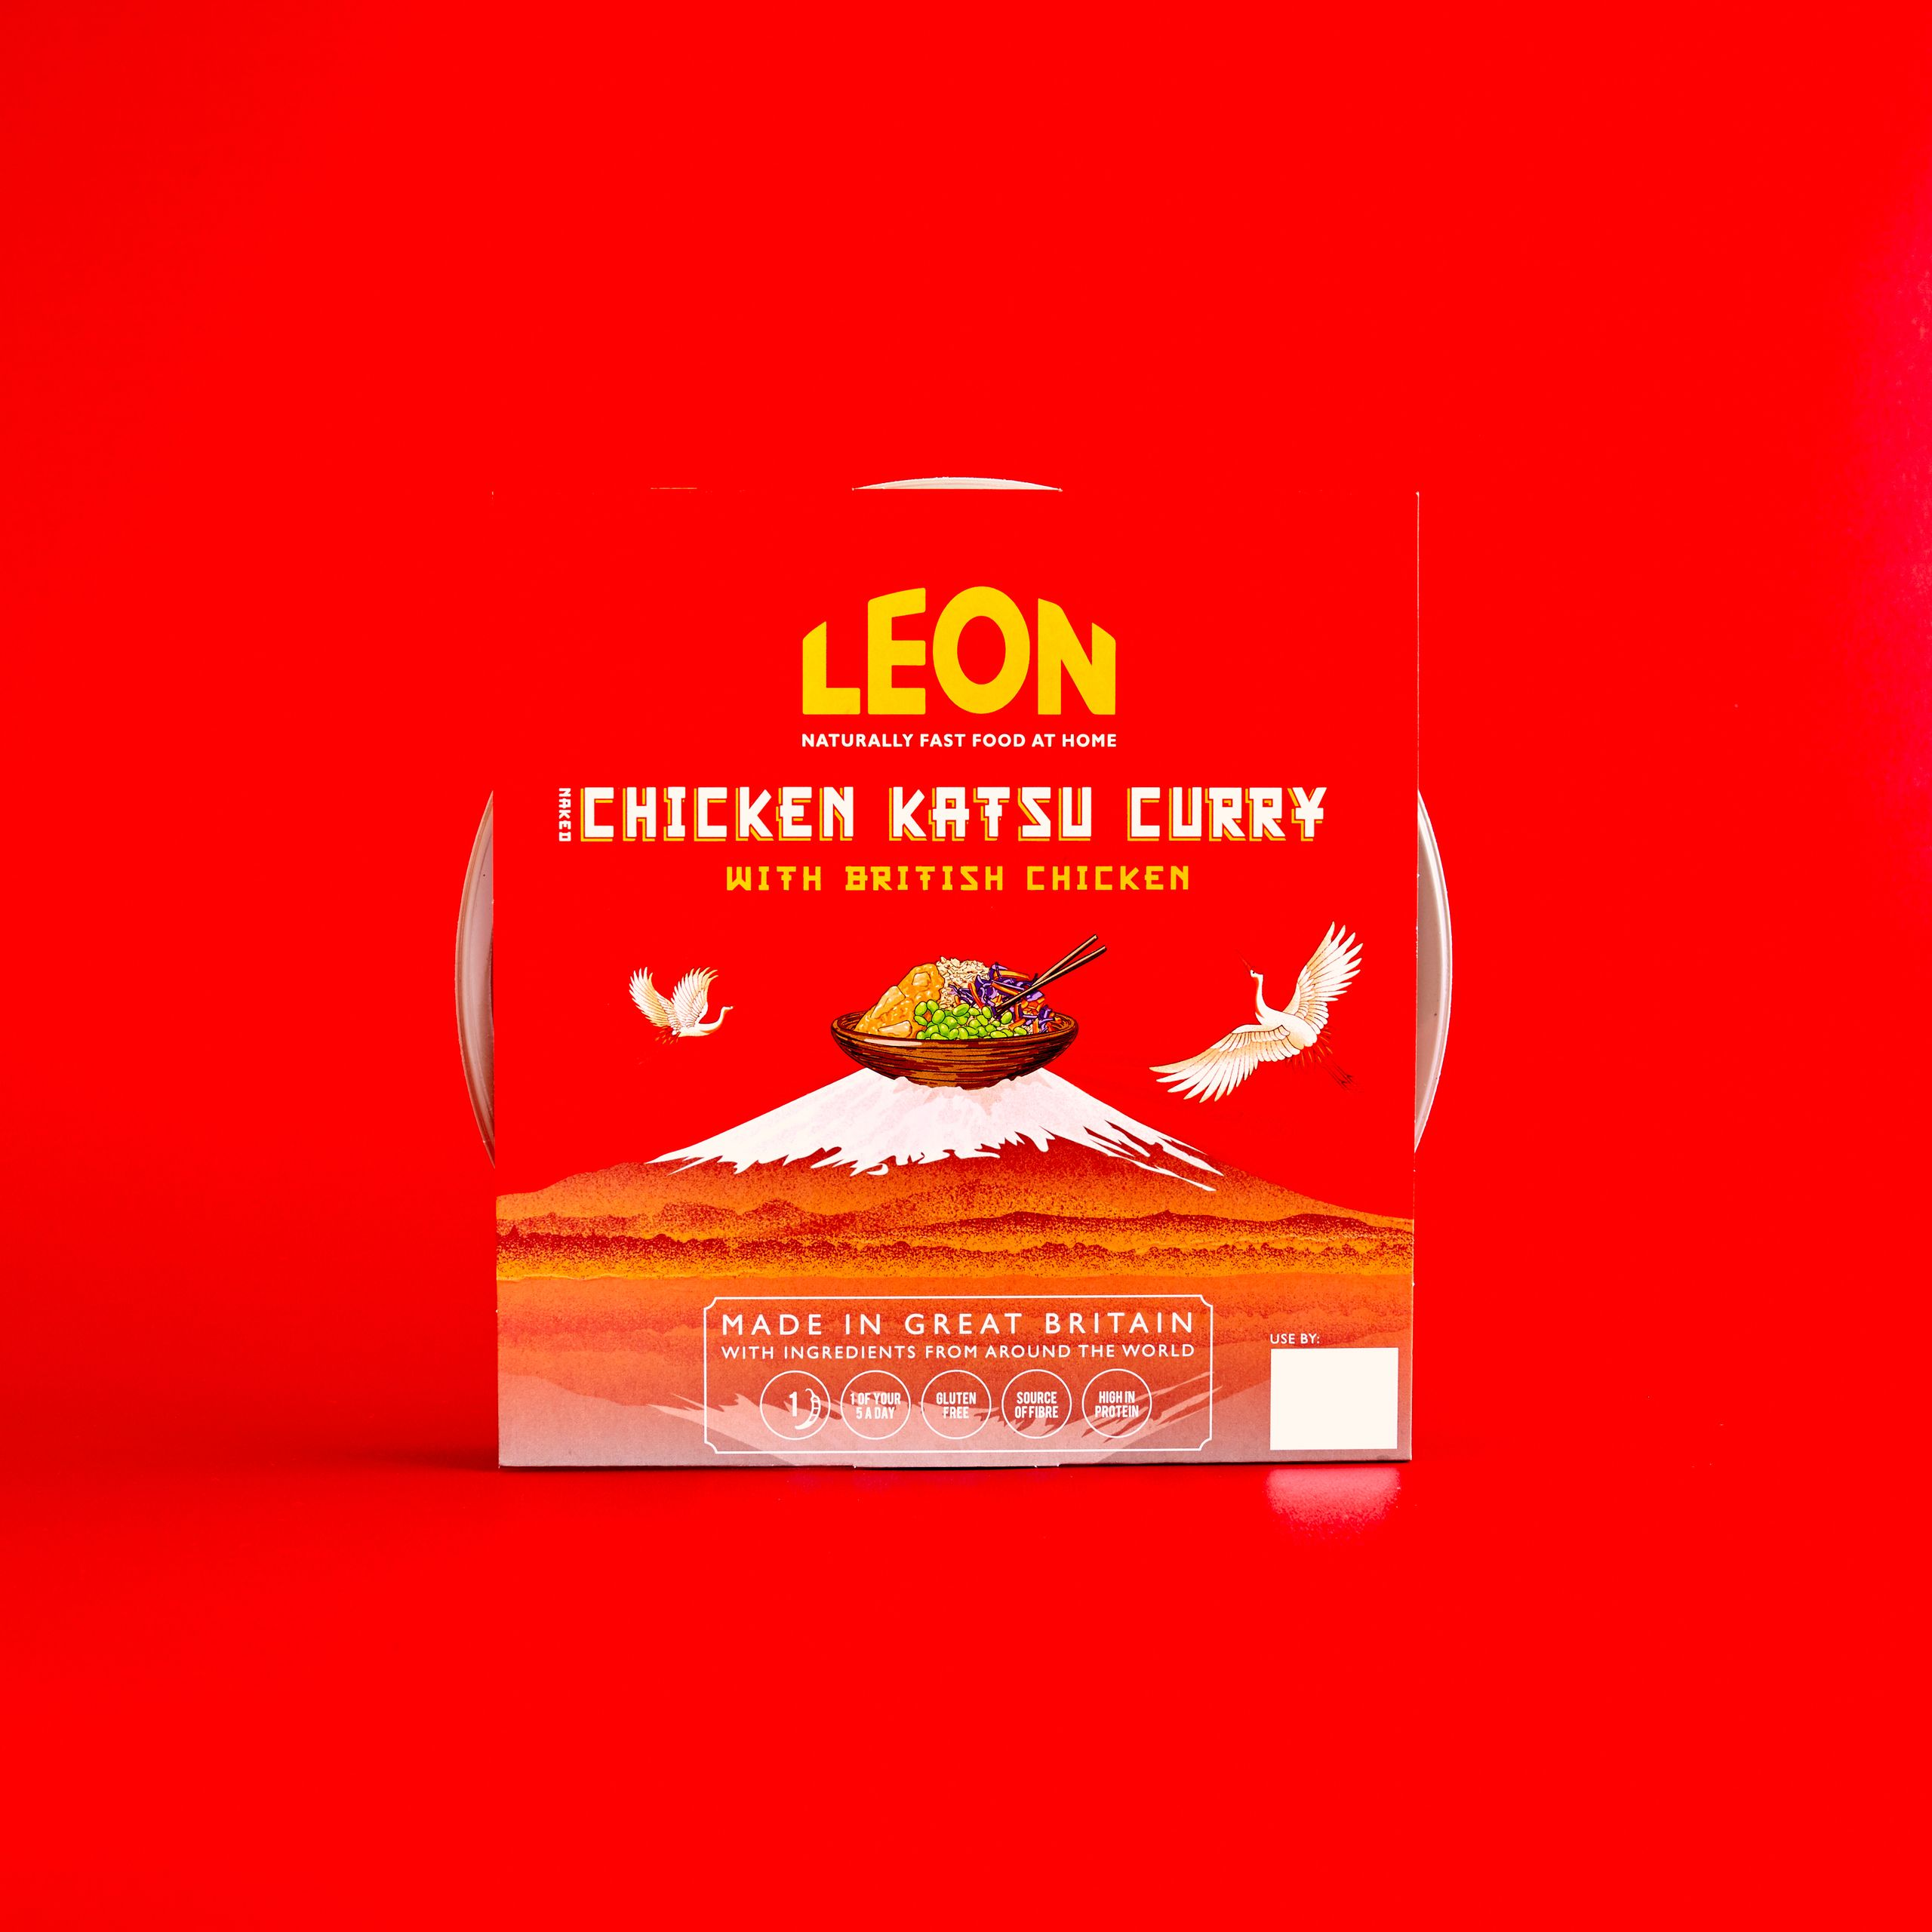 Leon ready meals